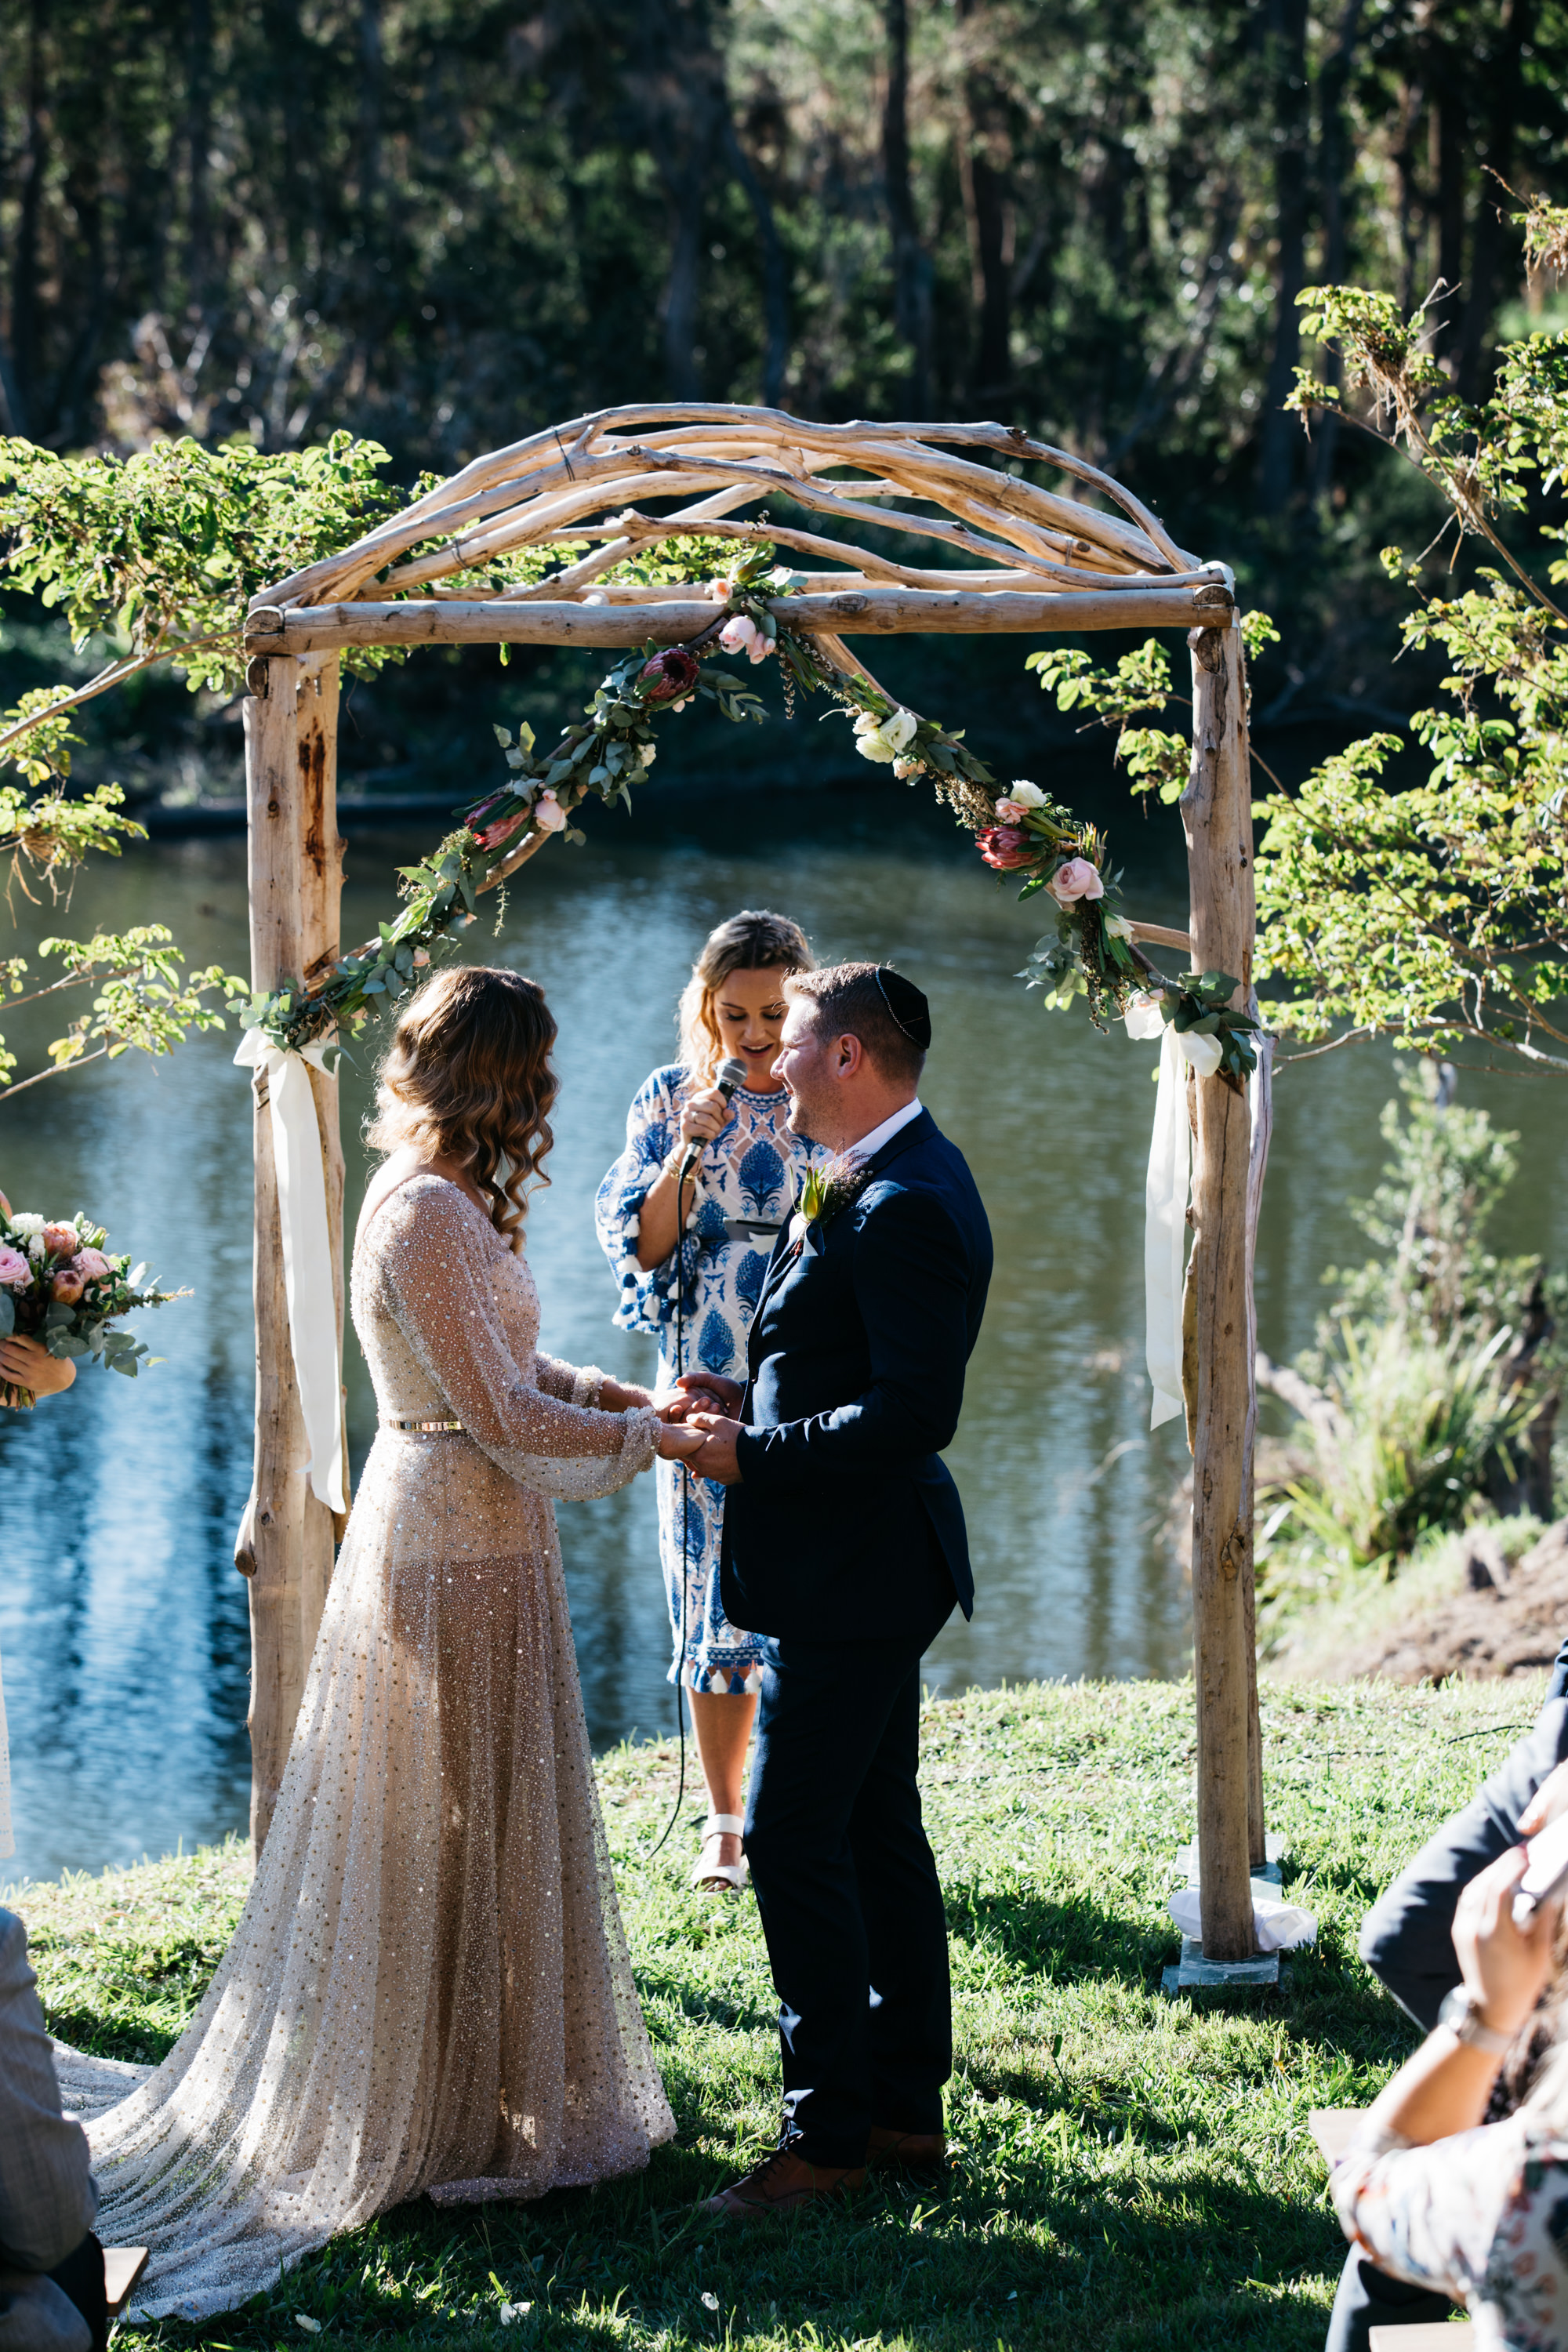 RIVERBANK AISLE CEREMONY SITE 1